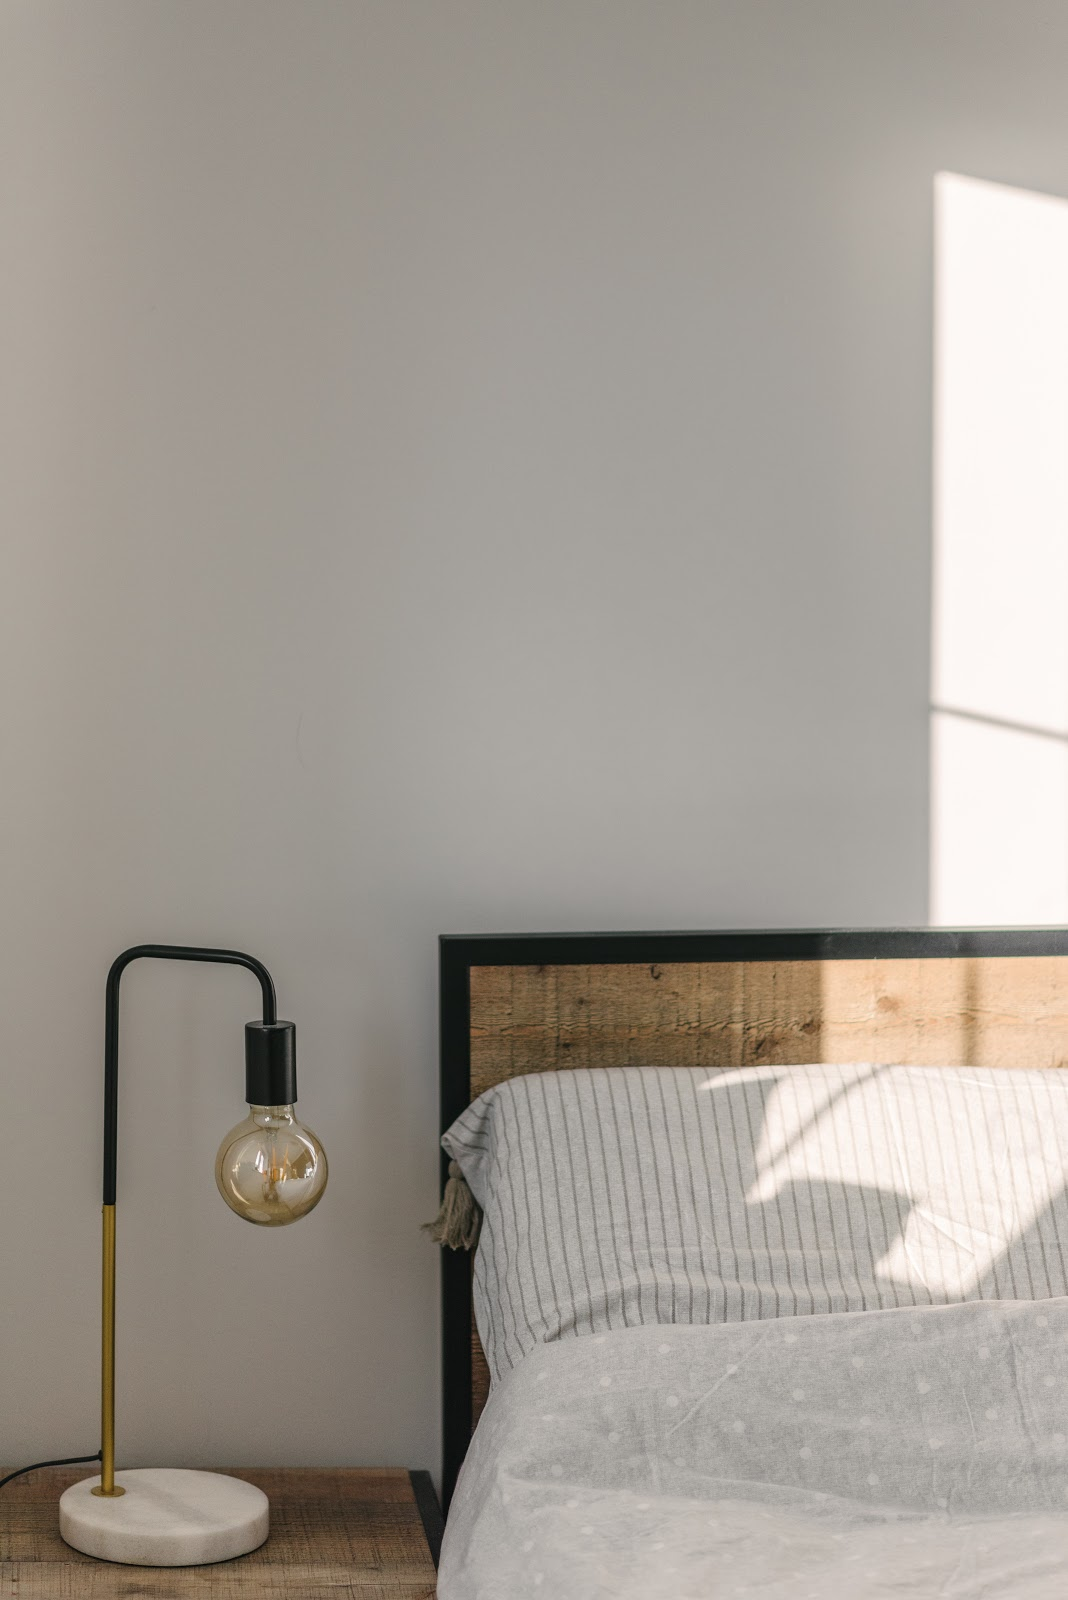 Adopting A Minimalist Style At Home